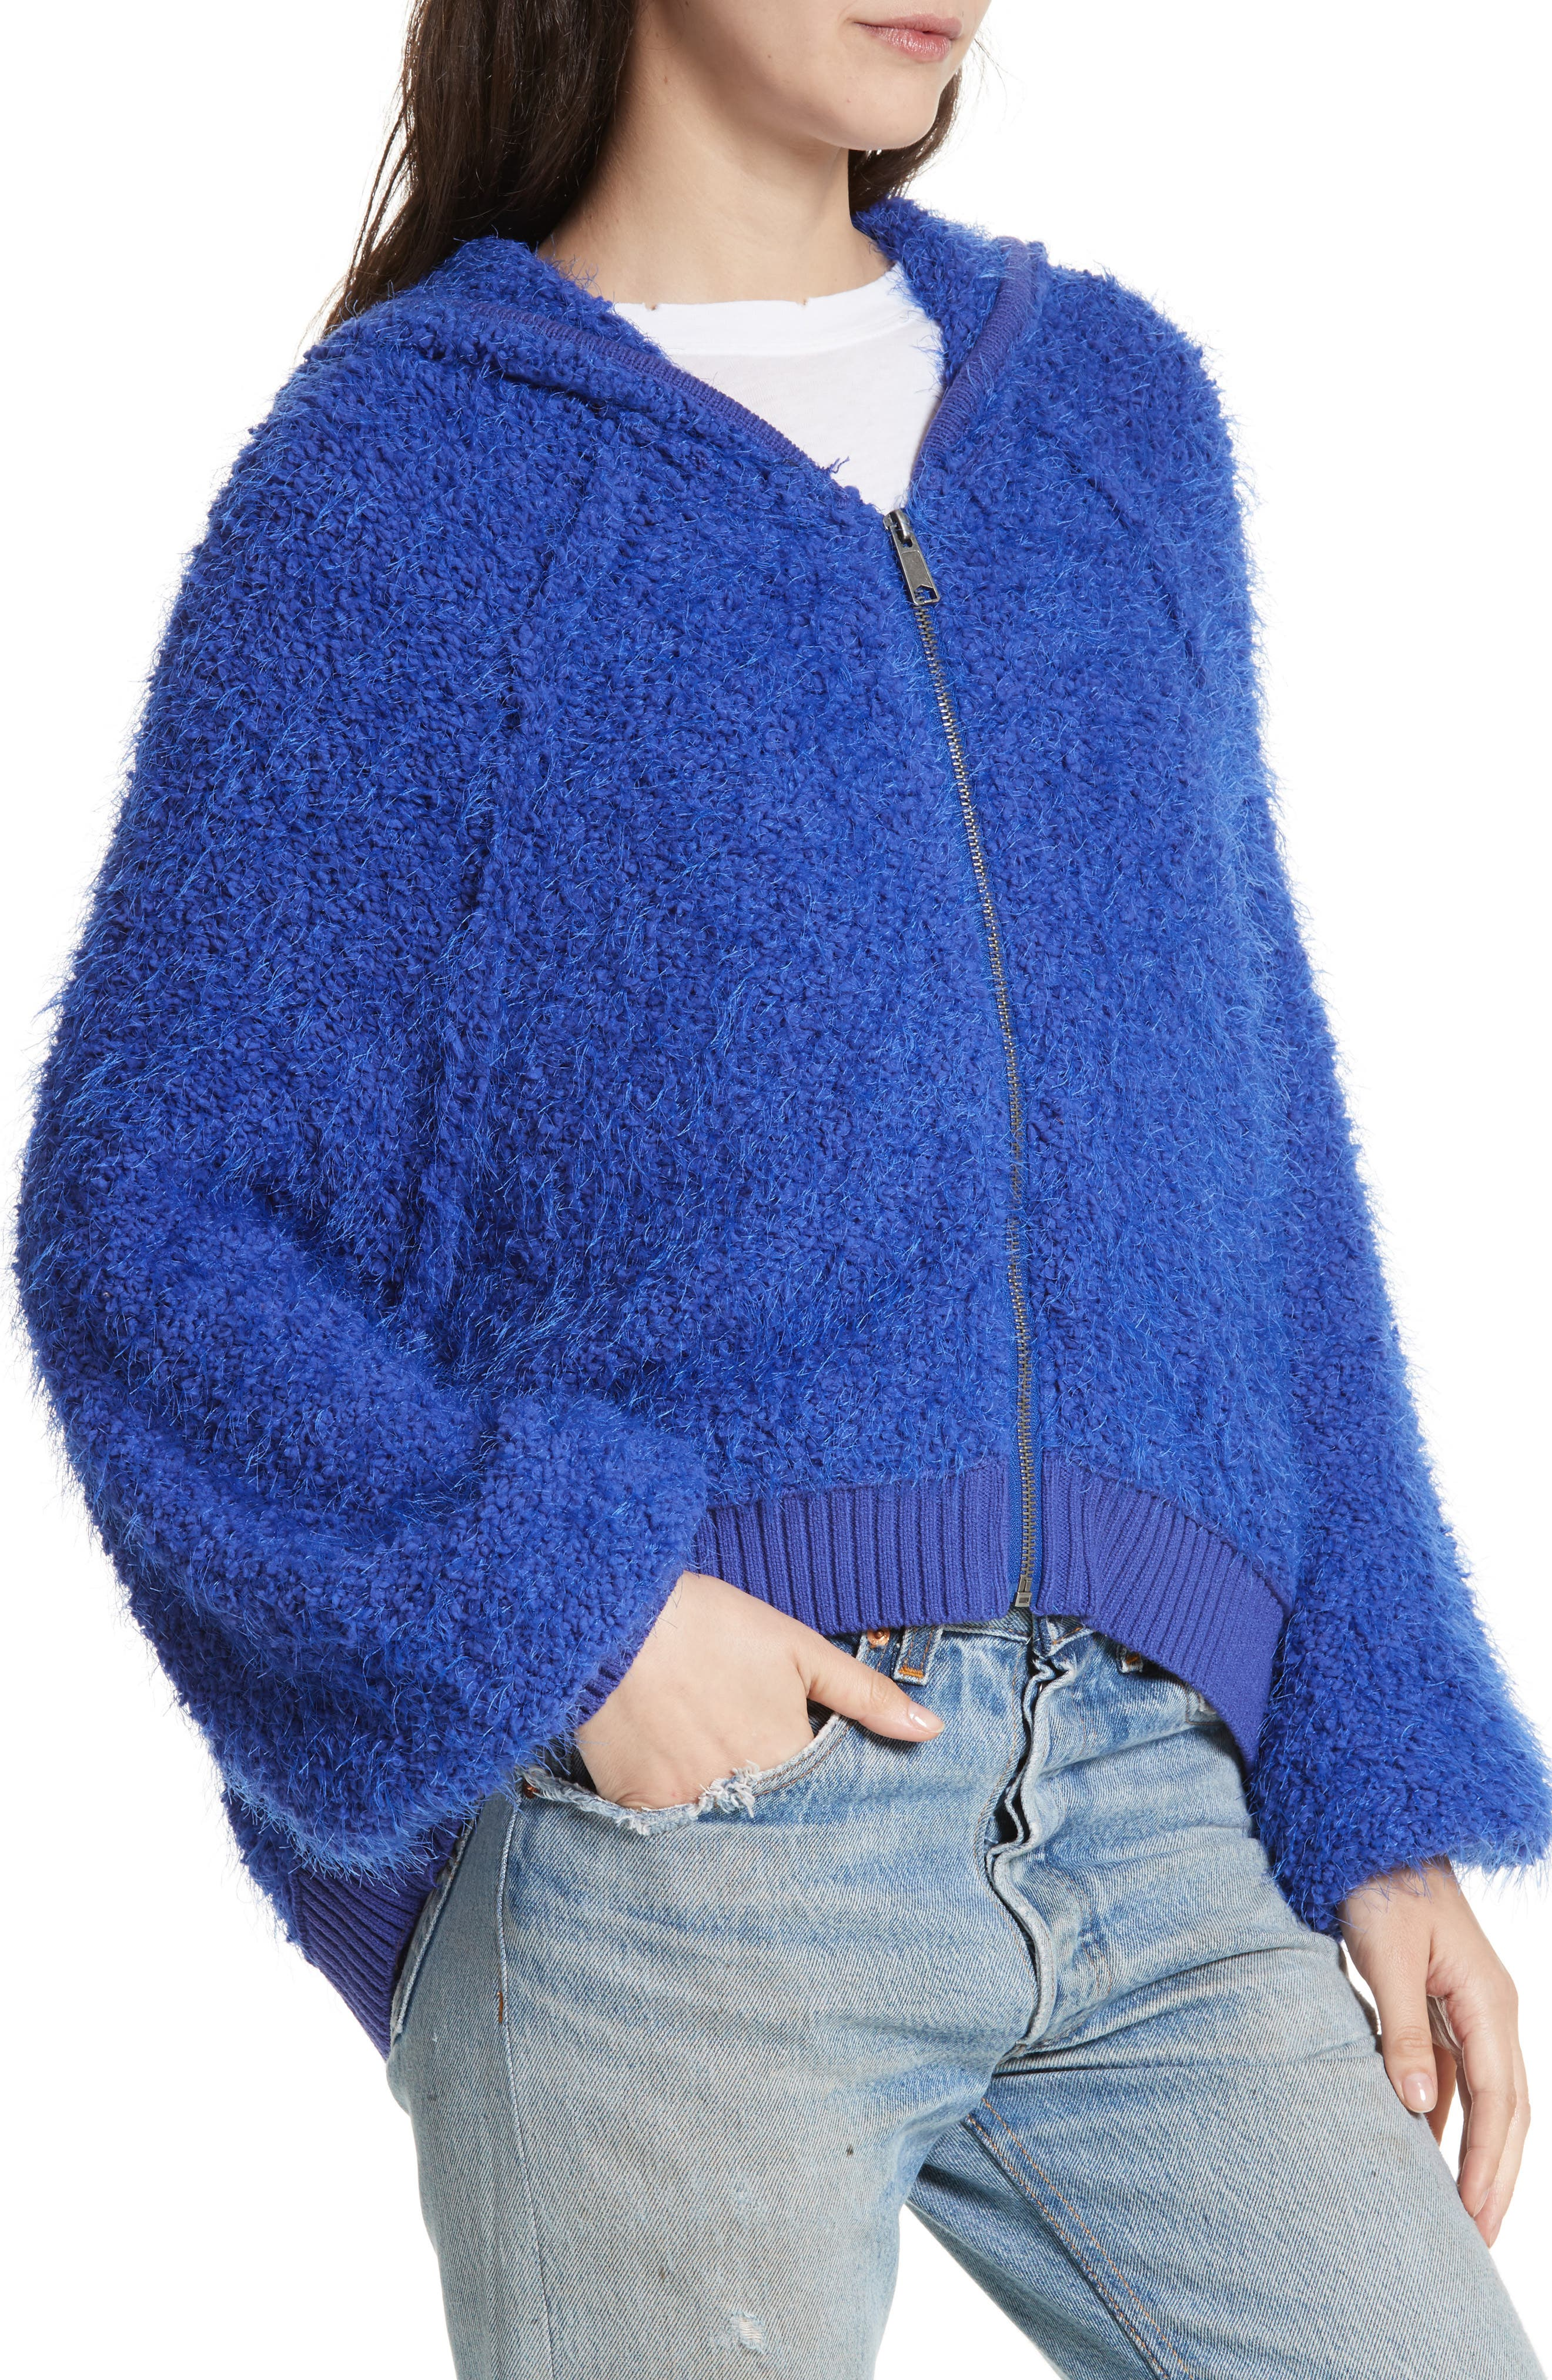 Furry Time Hooded Jacket,                             Alternate thumbnail 4, color,                             Blue